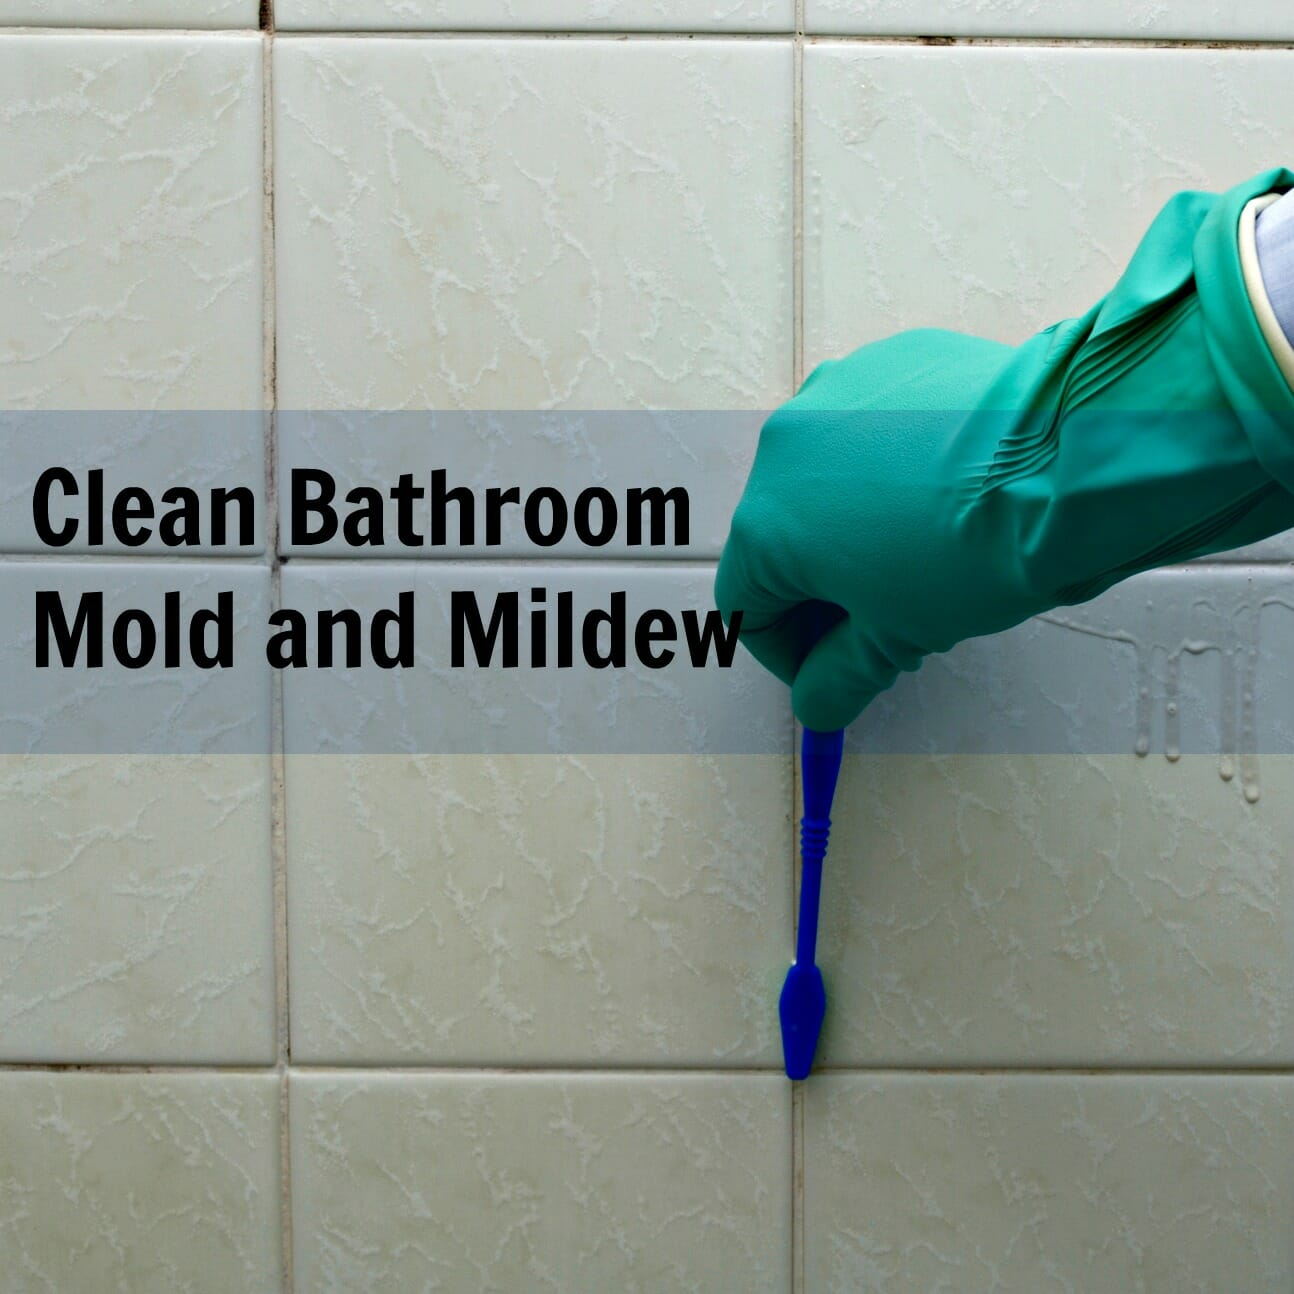 Surface Mold In Bathroom clean bathroom mold and mildew -